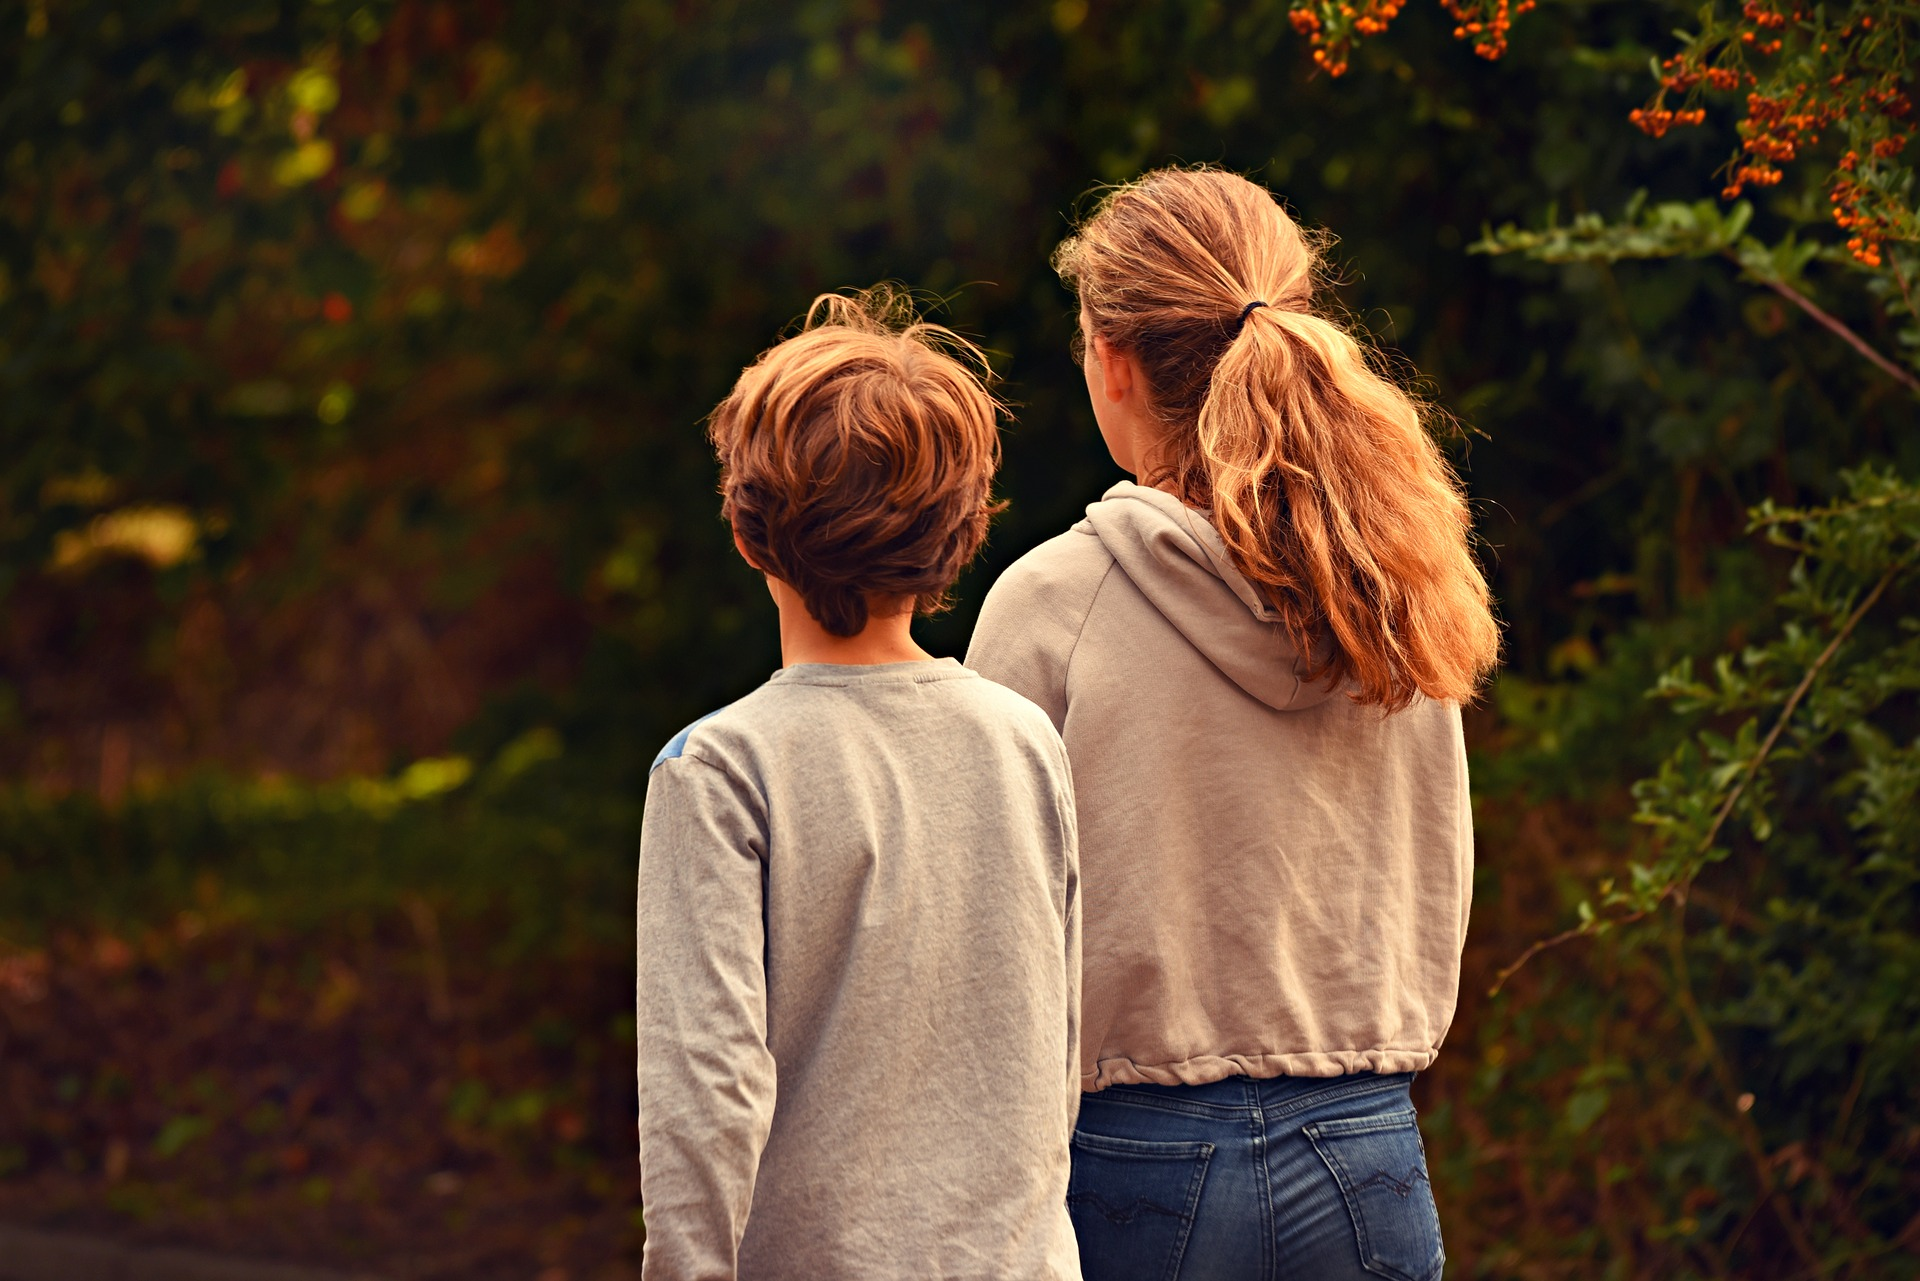 Having a sister as a child makes you a better person.